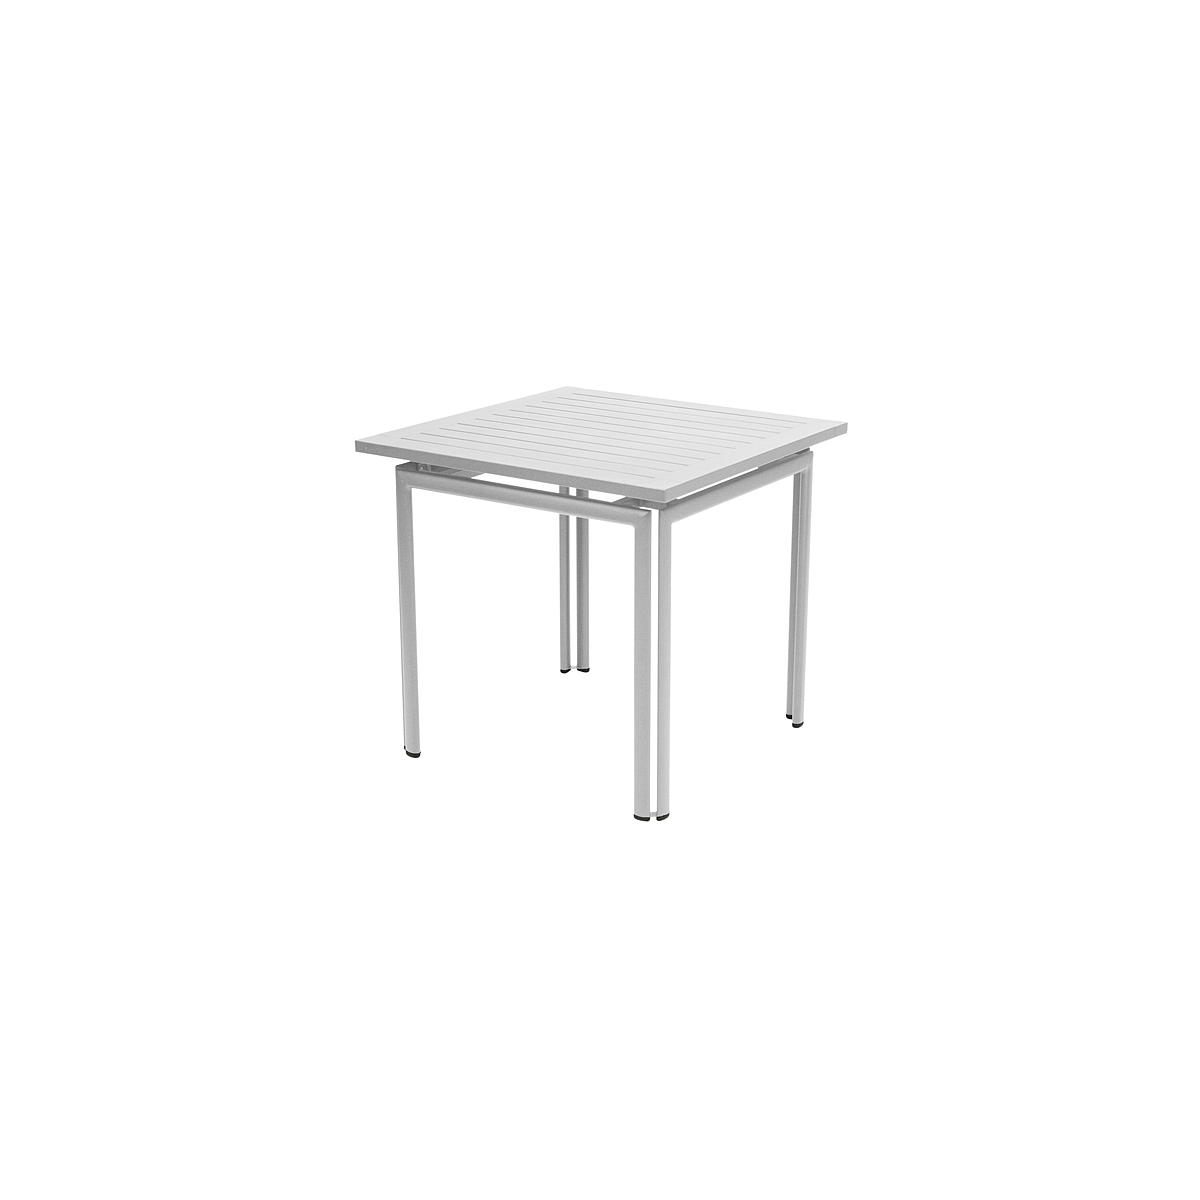 COSTA by Fermob Table 80x80 cm gris métal